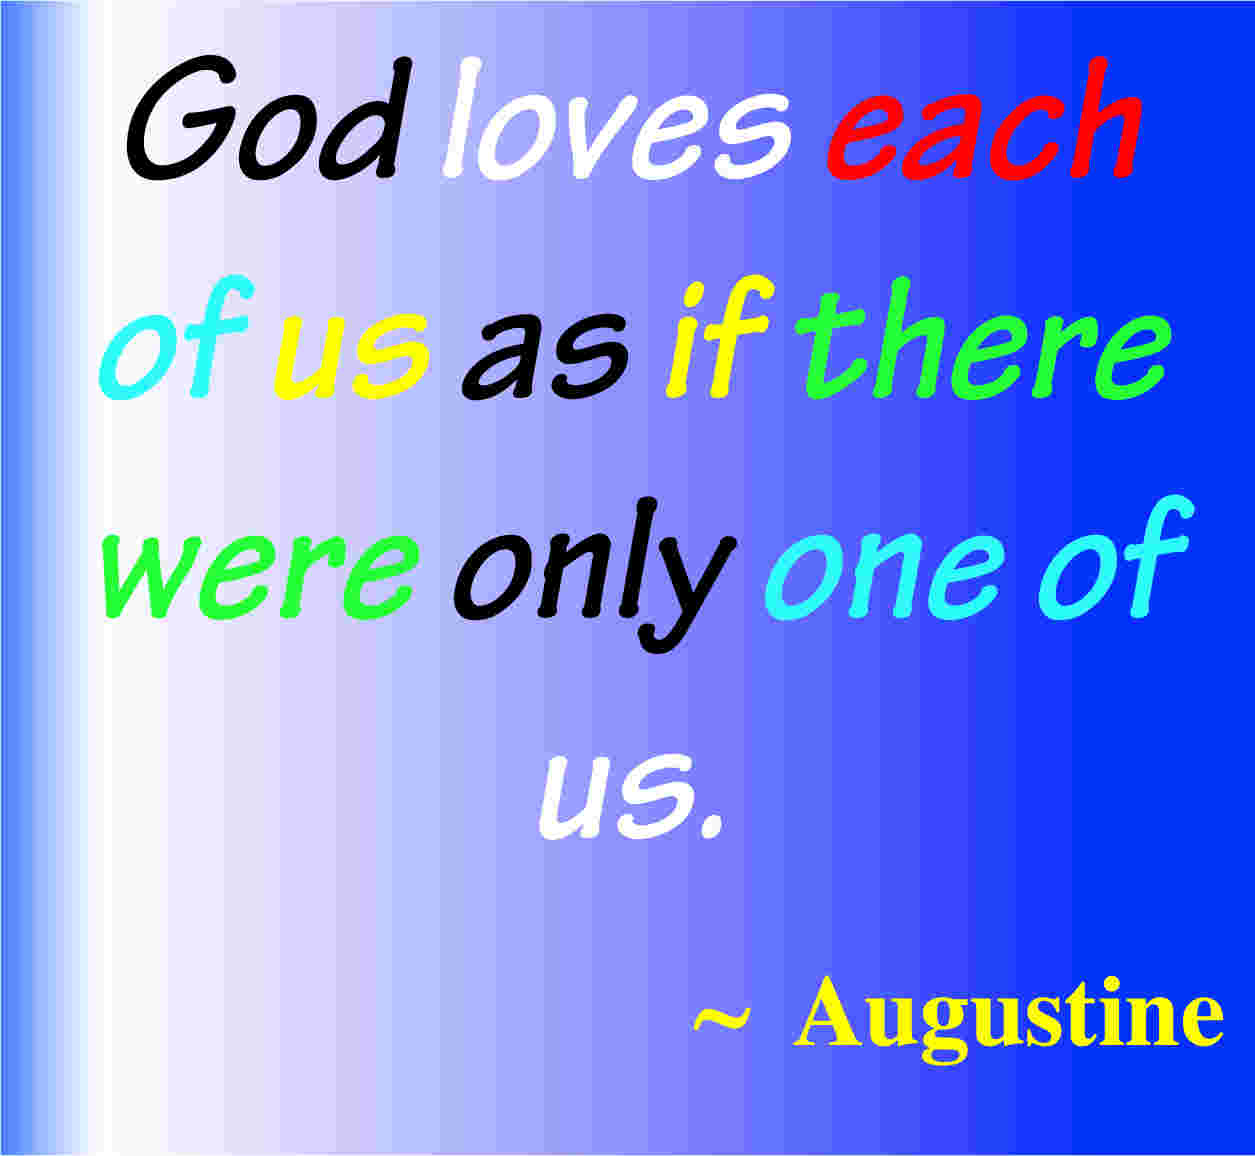 Love Bible Quotes Unique 20 Inspirational Bible Verses About God's Love